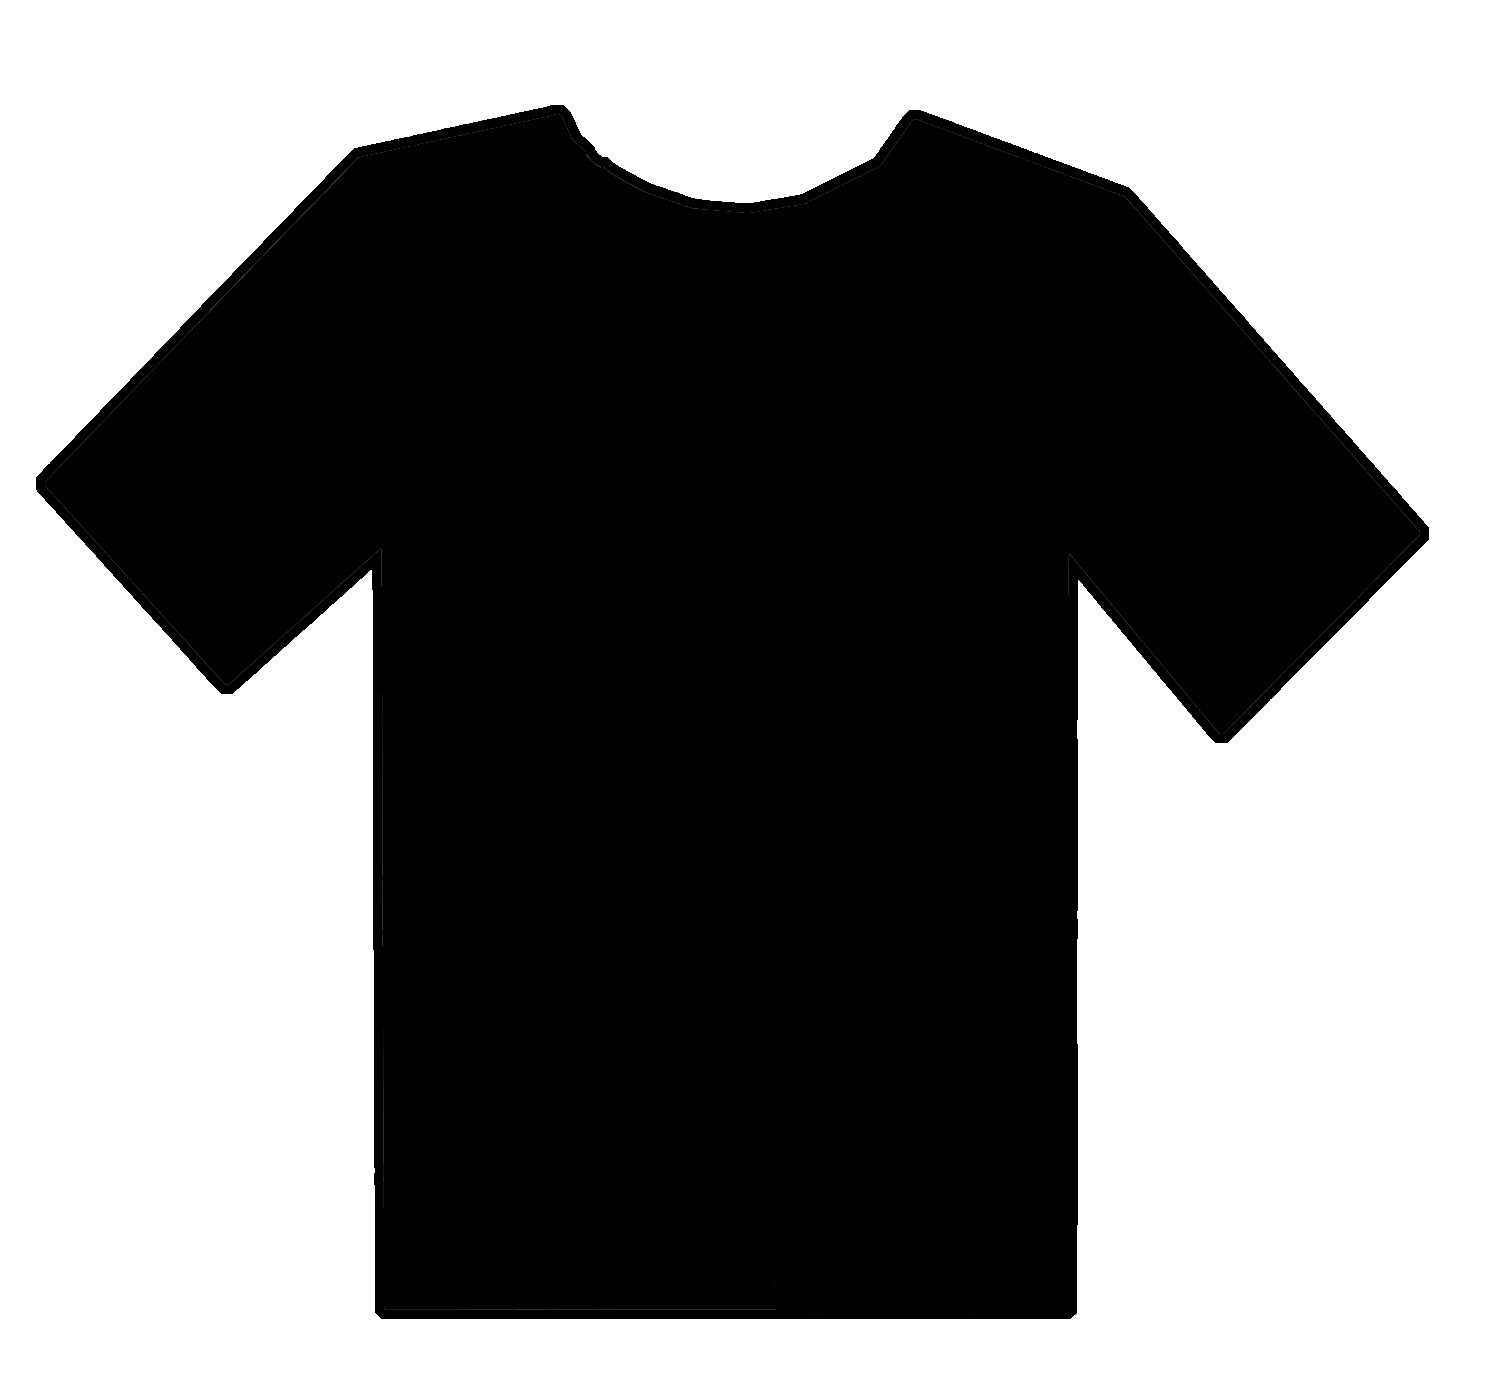 Blank T Shirts Vector Illustration Front And Back By Mr on ...